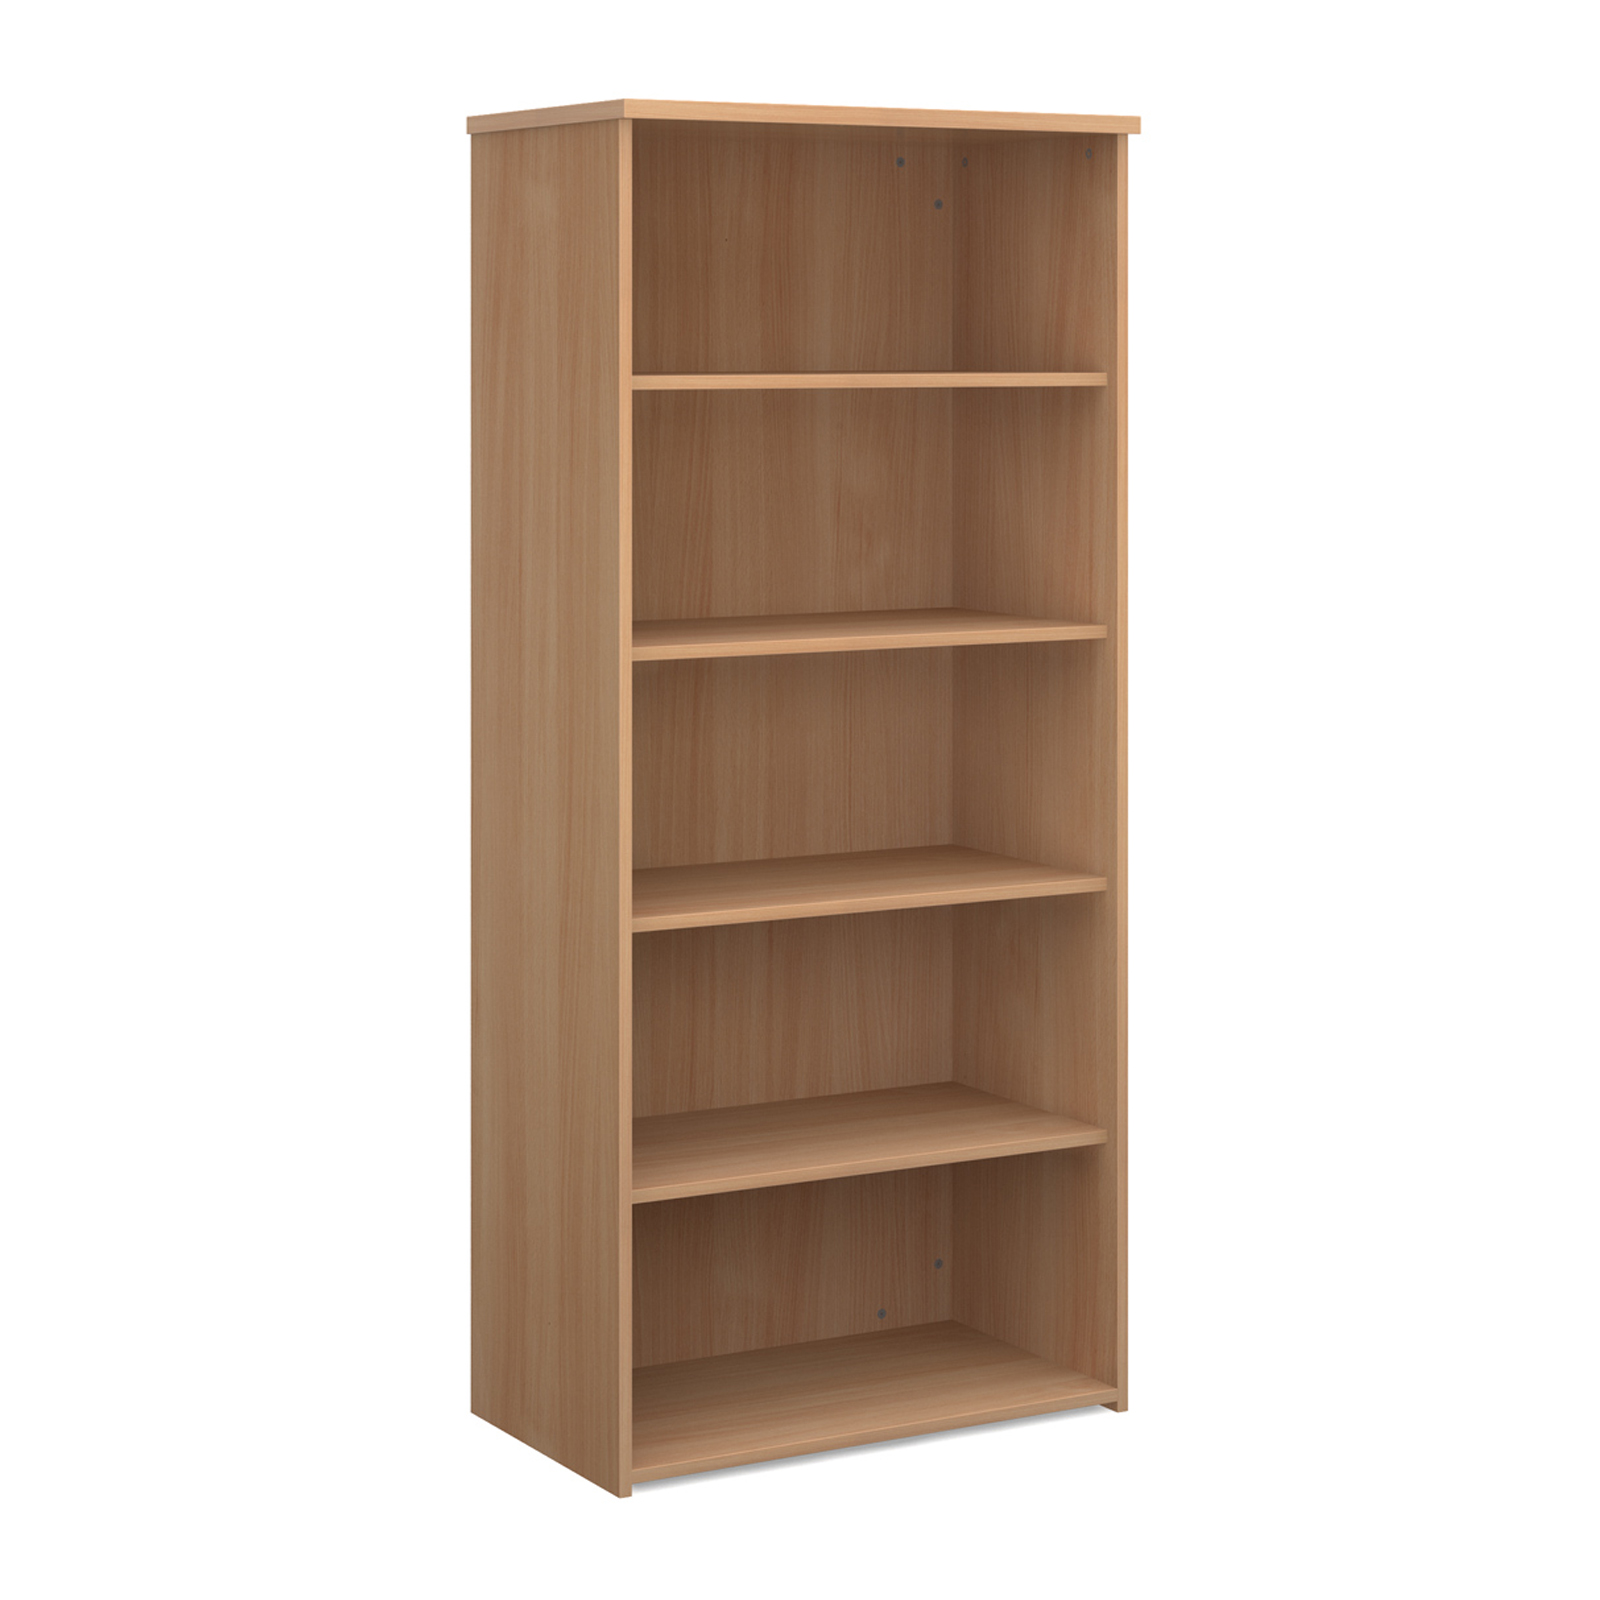 Over 1200mm High Universal bookcase 1790mm high with 4 shelves - beech